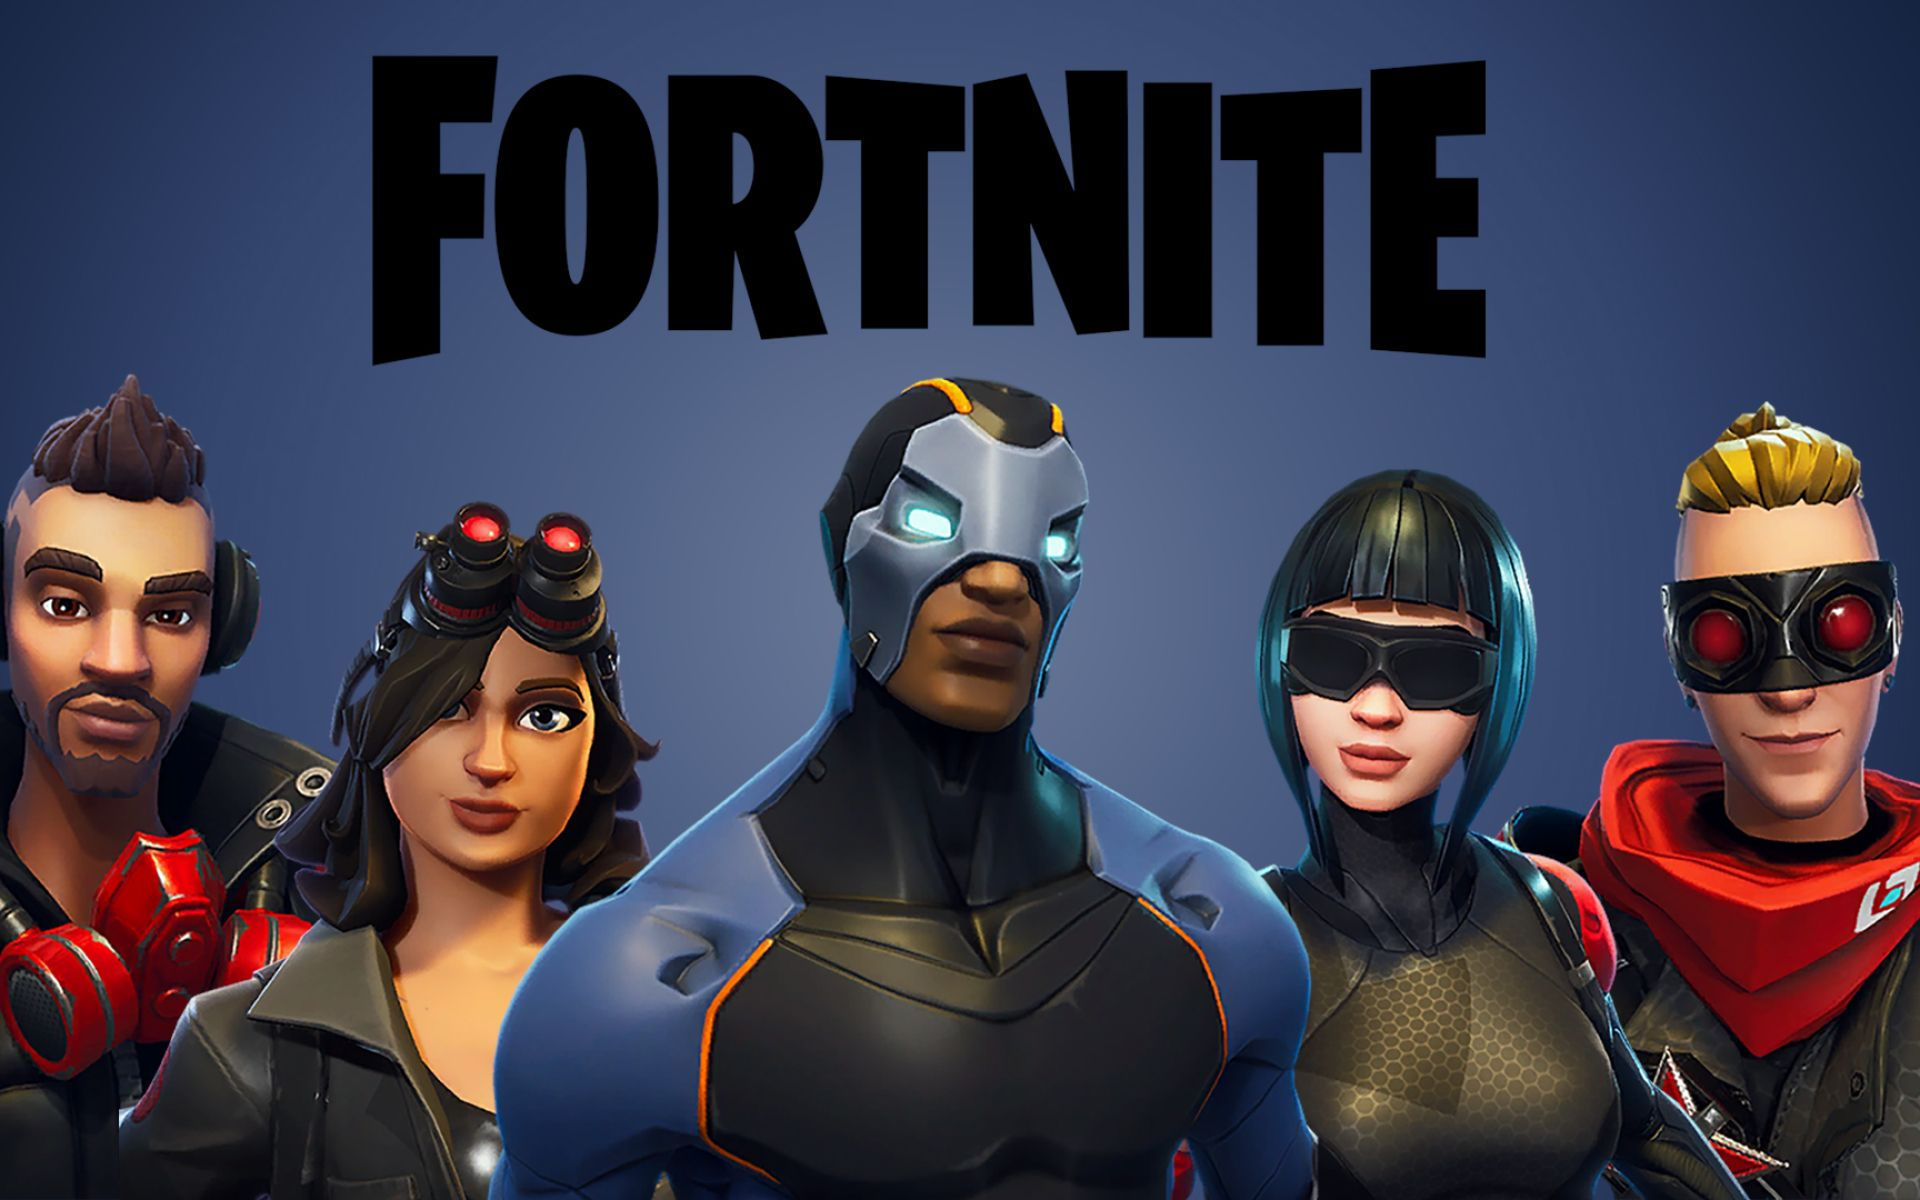 Pin by Wallpaper Cart on Fortnite Wallpapers Background